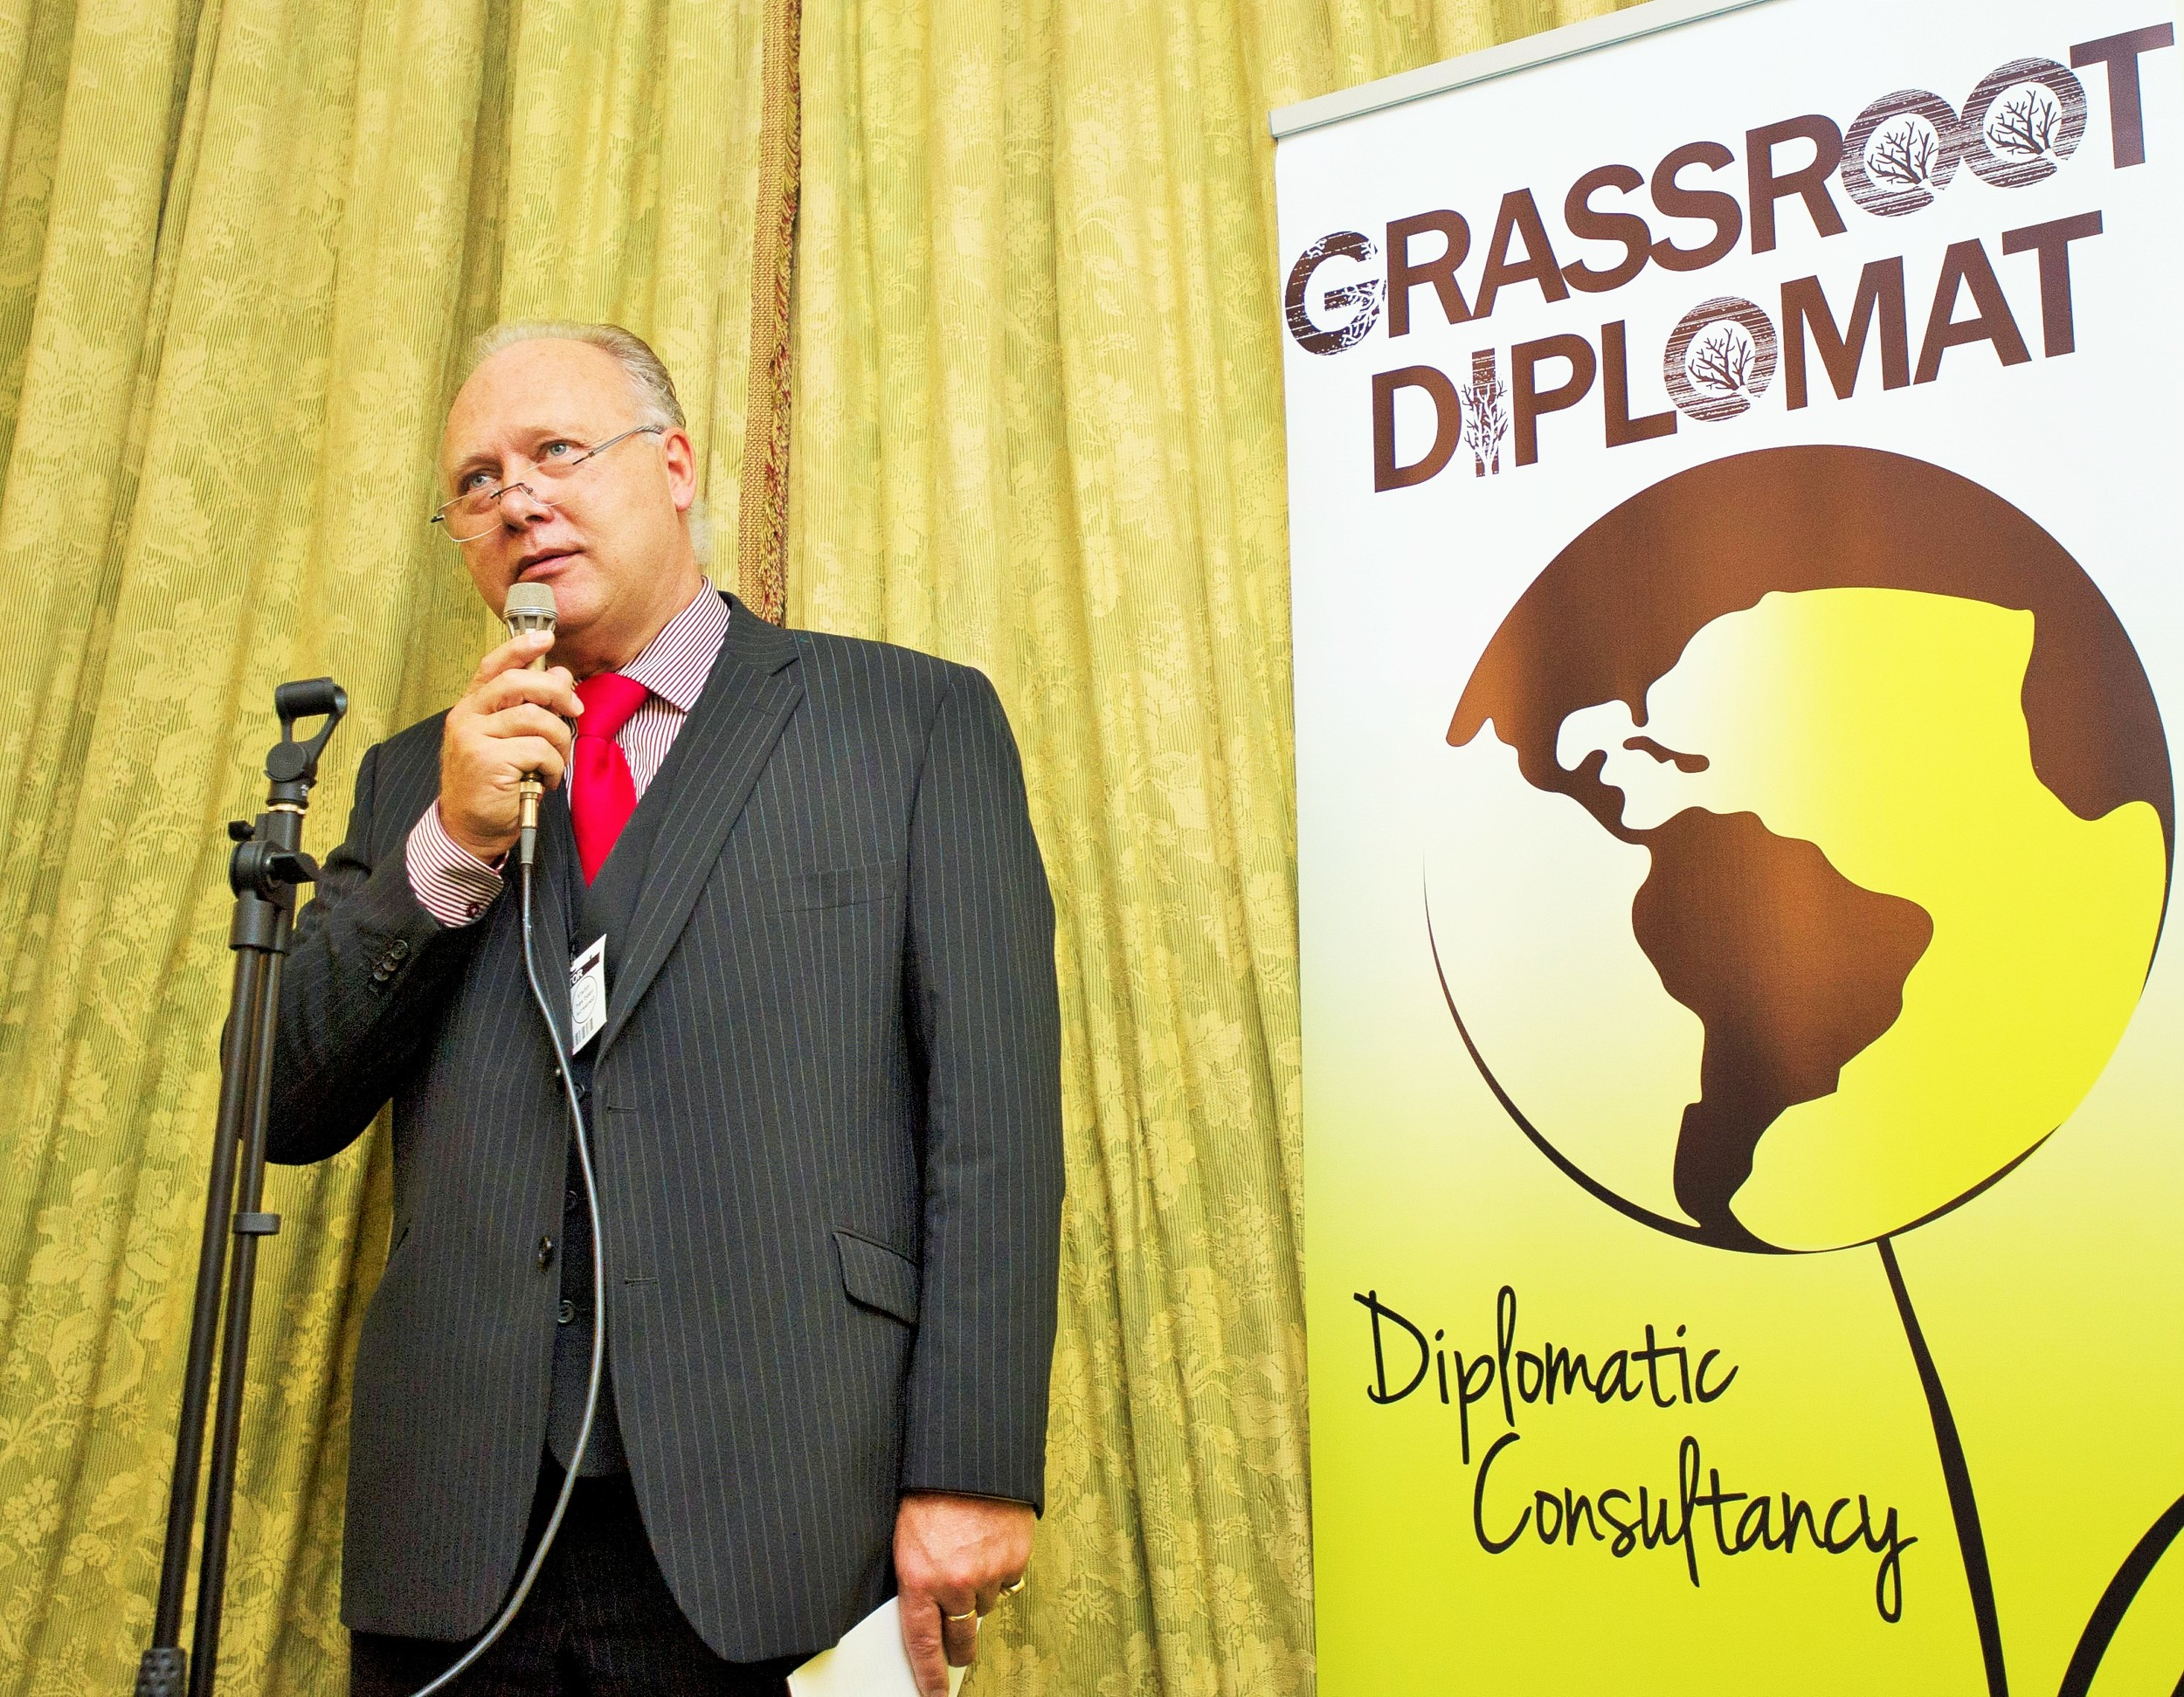 Diplomatic Card Services CEO Marc Stockbroekx